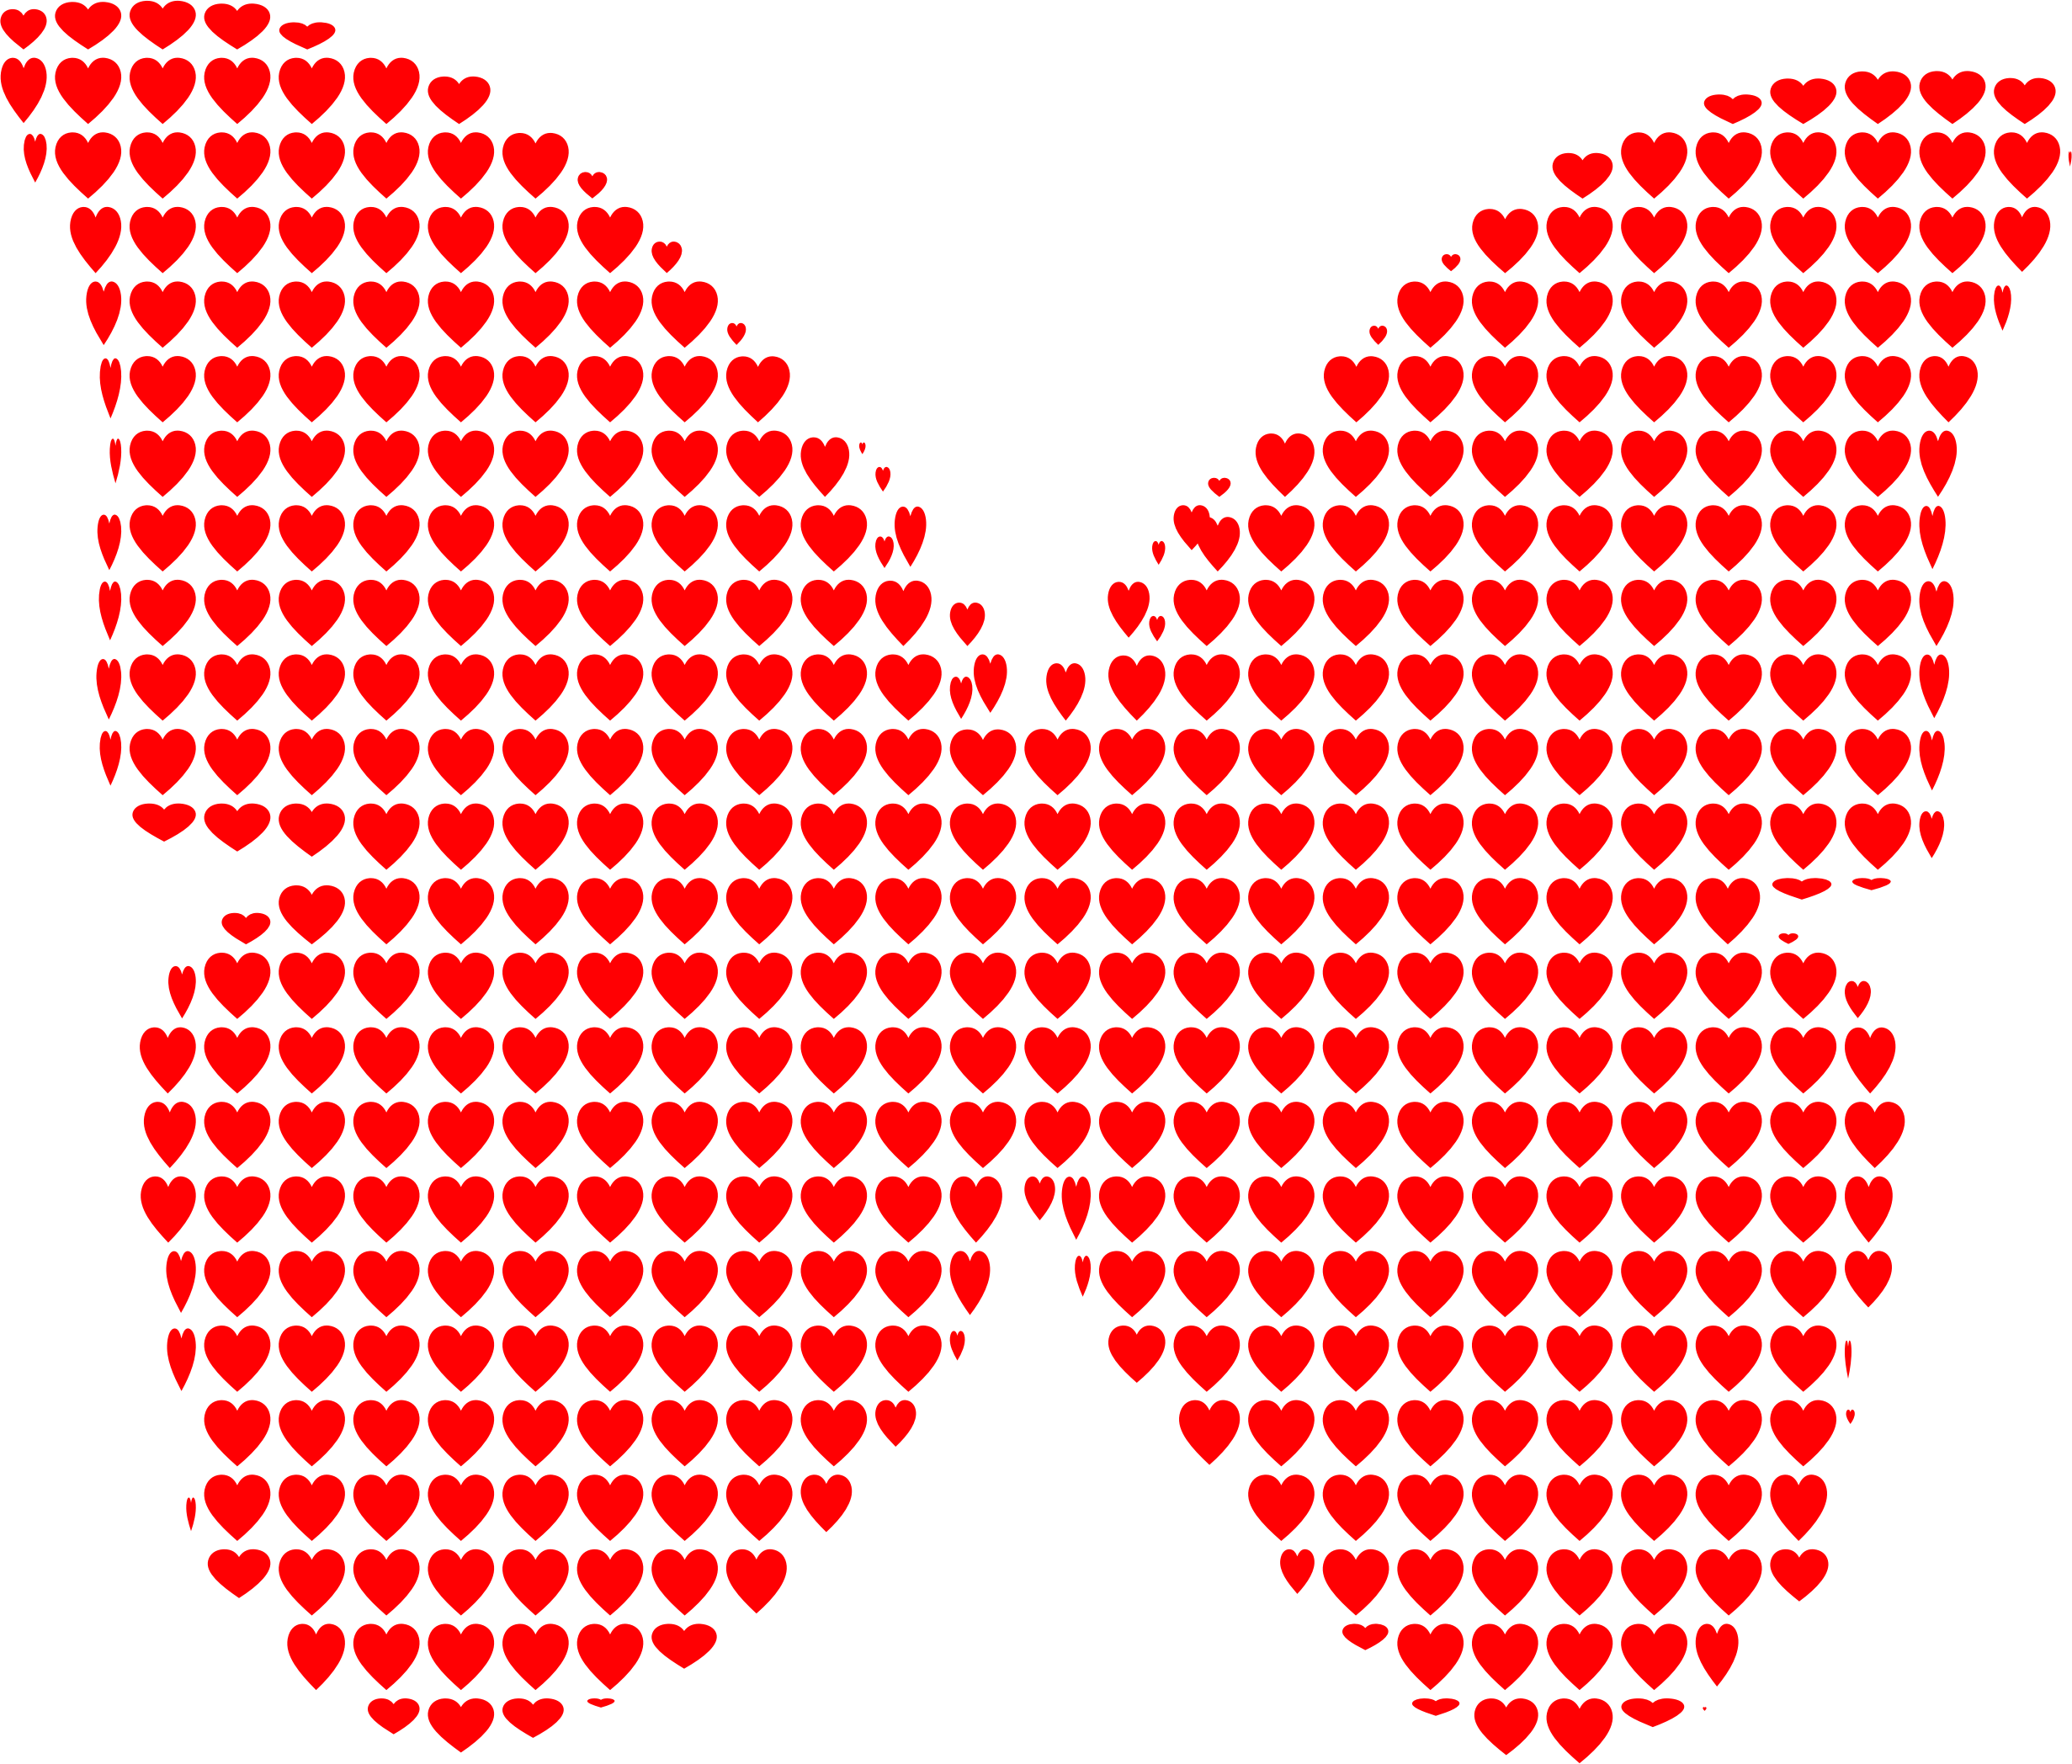 Heart trail clipart vector download Butterfly Heart Clipart - BClipart vector download